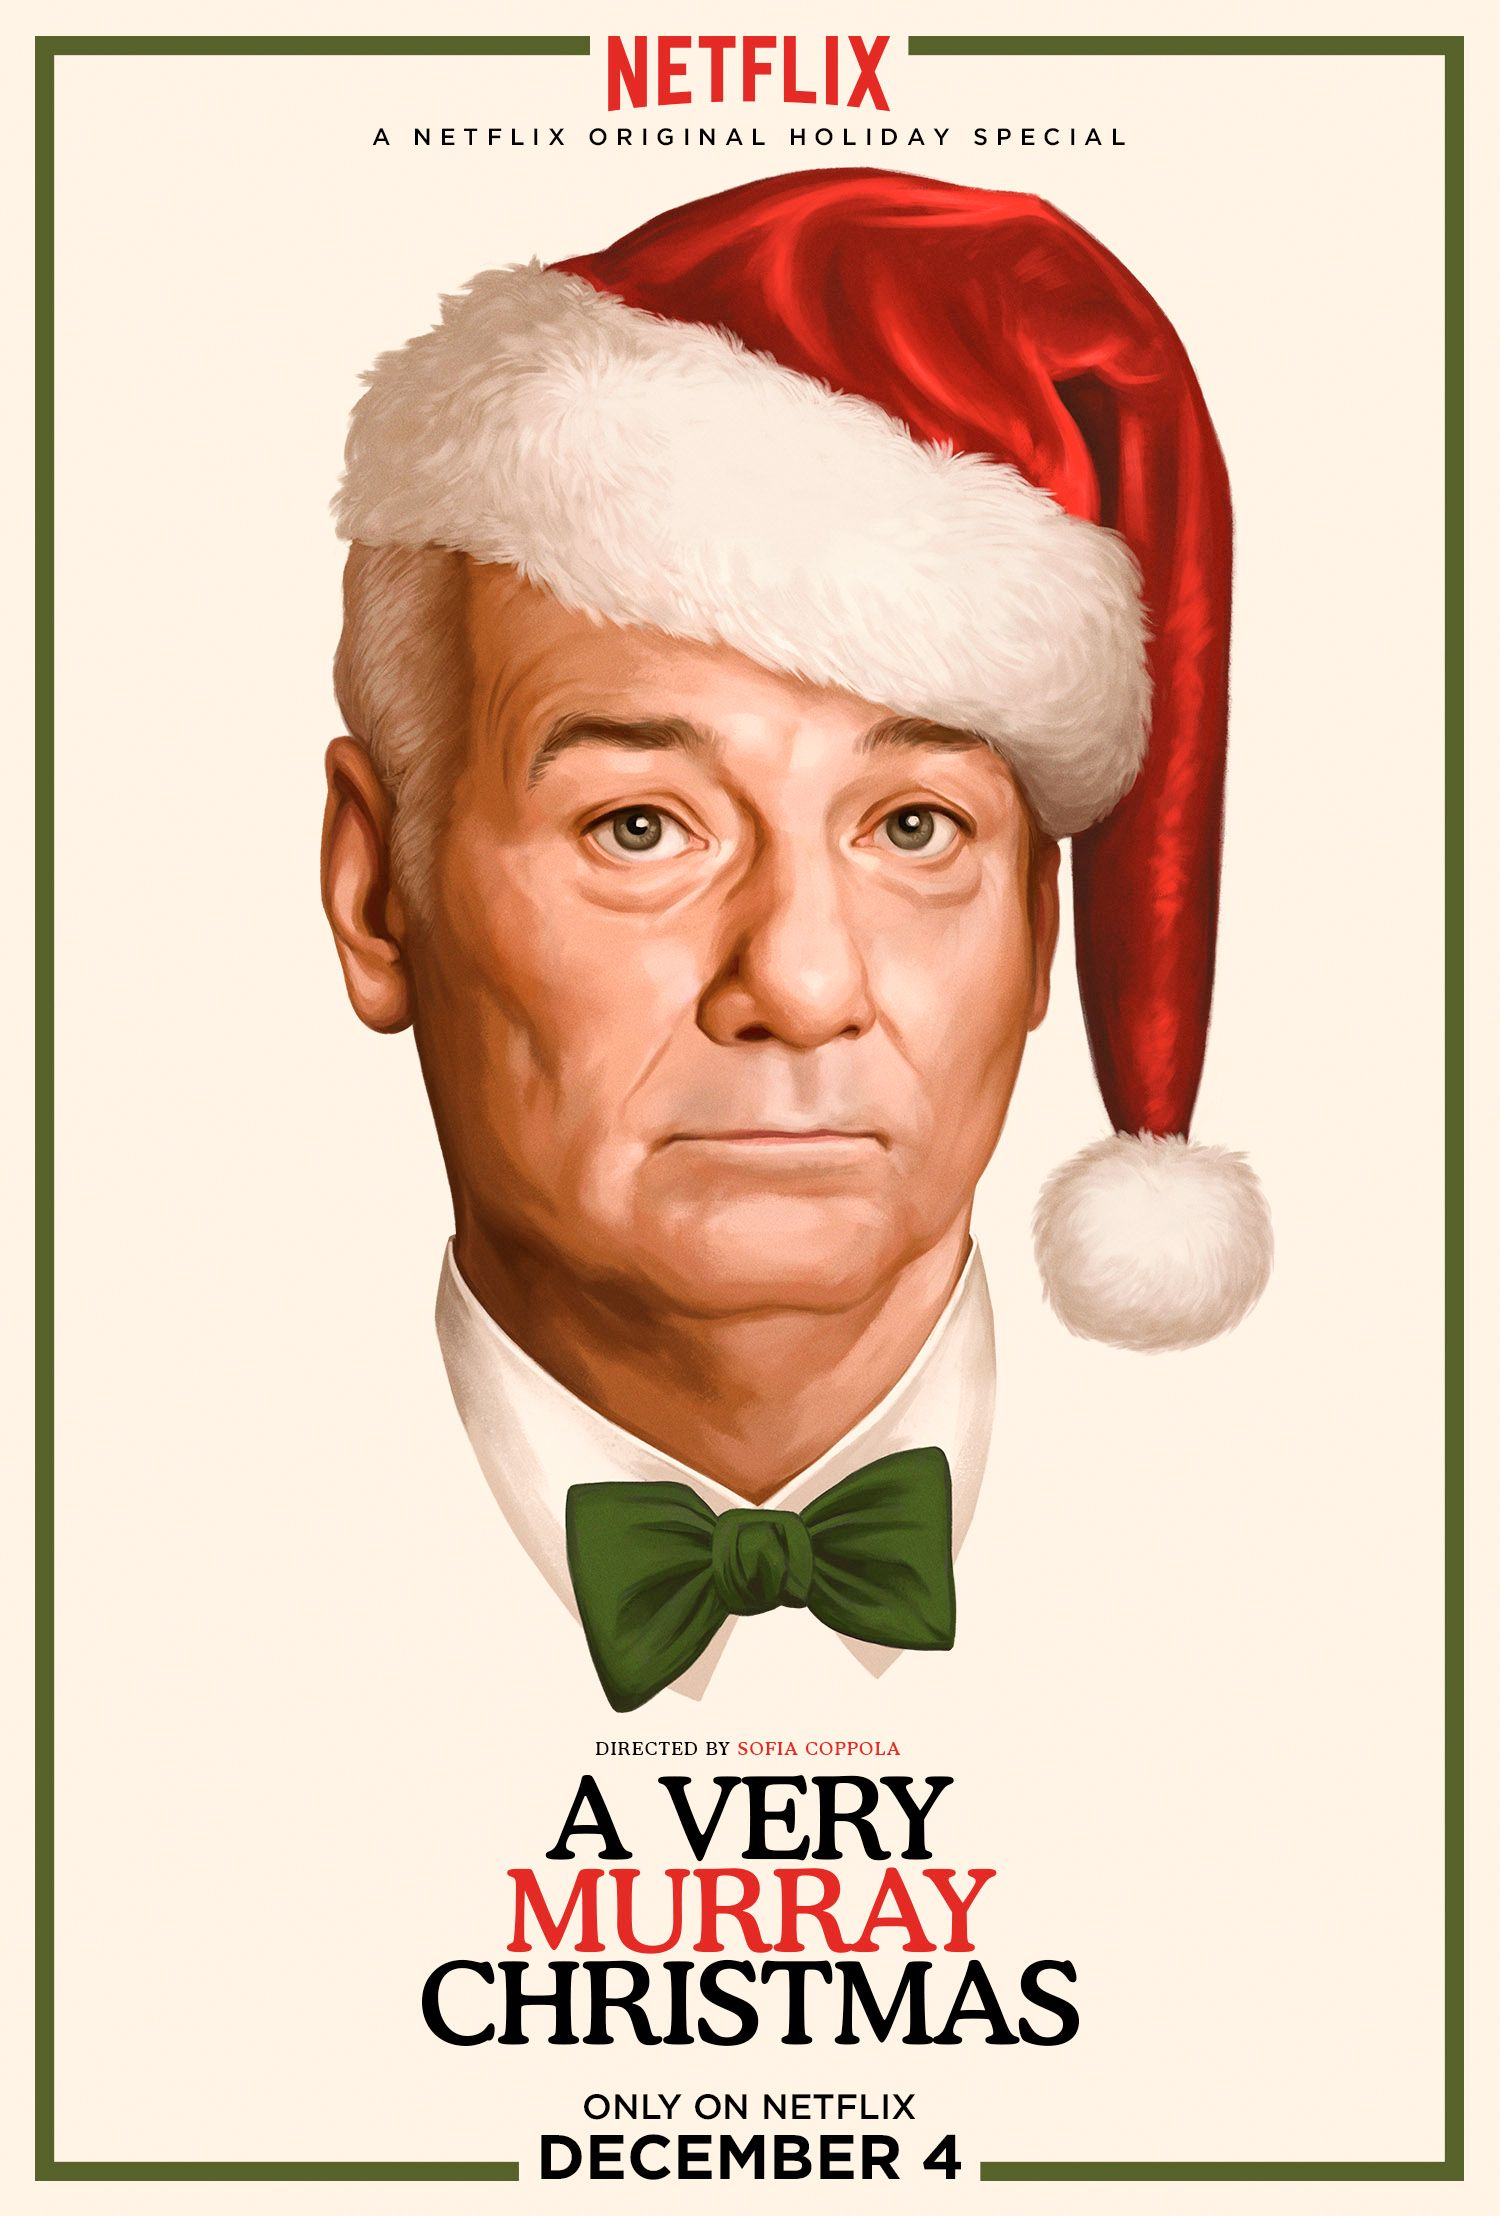 Bill Murray Sings in New A Very Murray Christmas Trailer | Collider